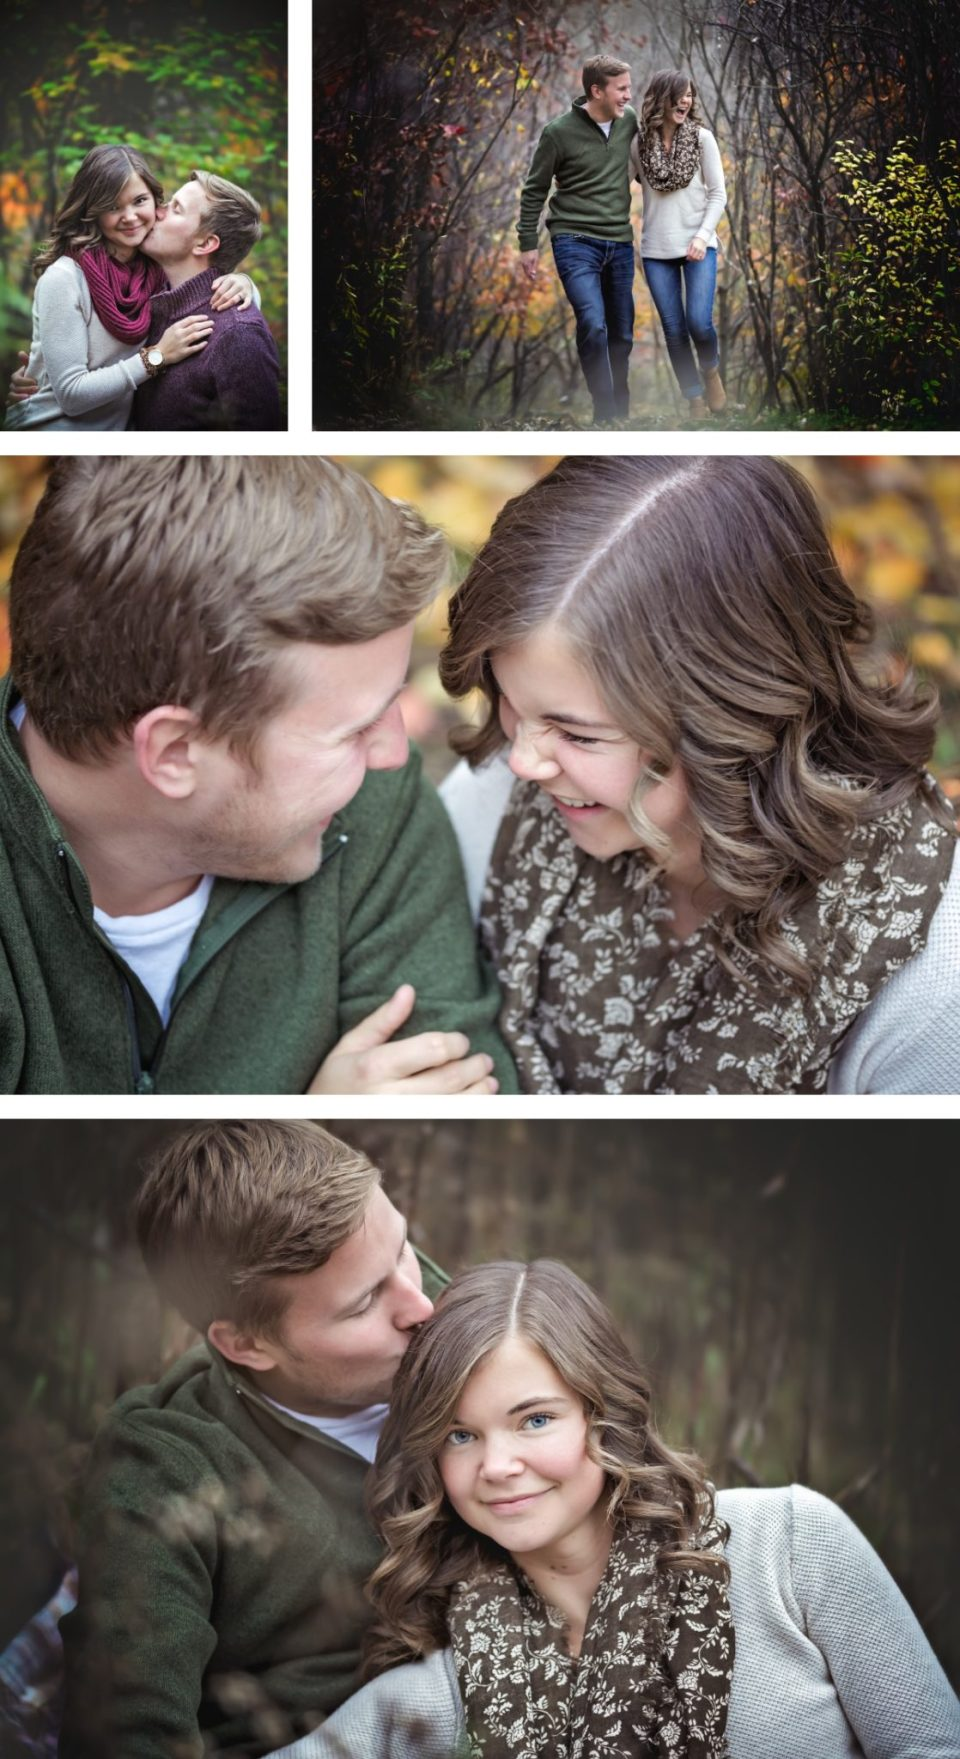 Pink Spruce Photography Best of Engagement Photos for 2017 - Jennie and Jesse